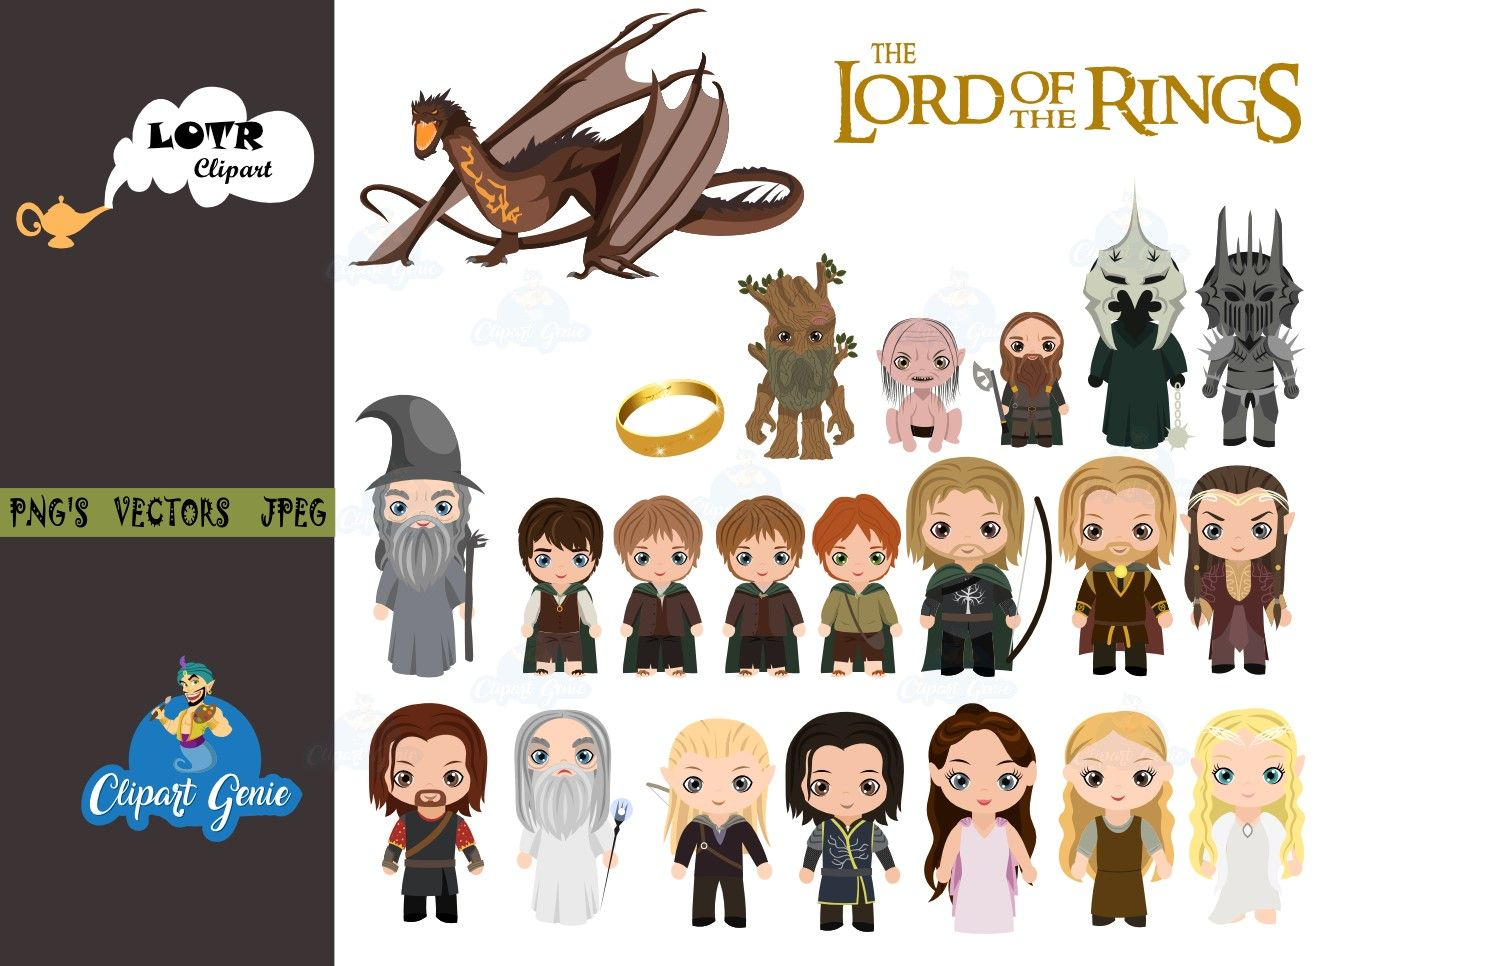 Lotr Clipart Bundle Lord Of The Rings Clipart Lotr Clipart Ring Clipart Hobbit Clipart Gandalf Clipart Aragorn Clipart Lor Clip Art Art Bundle Image Paper